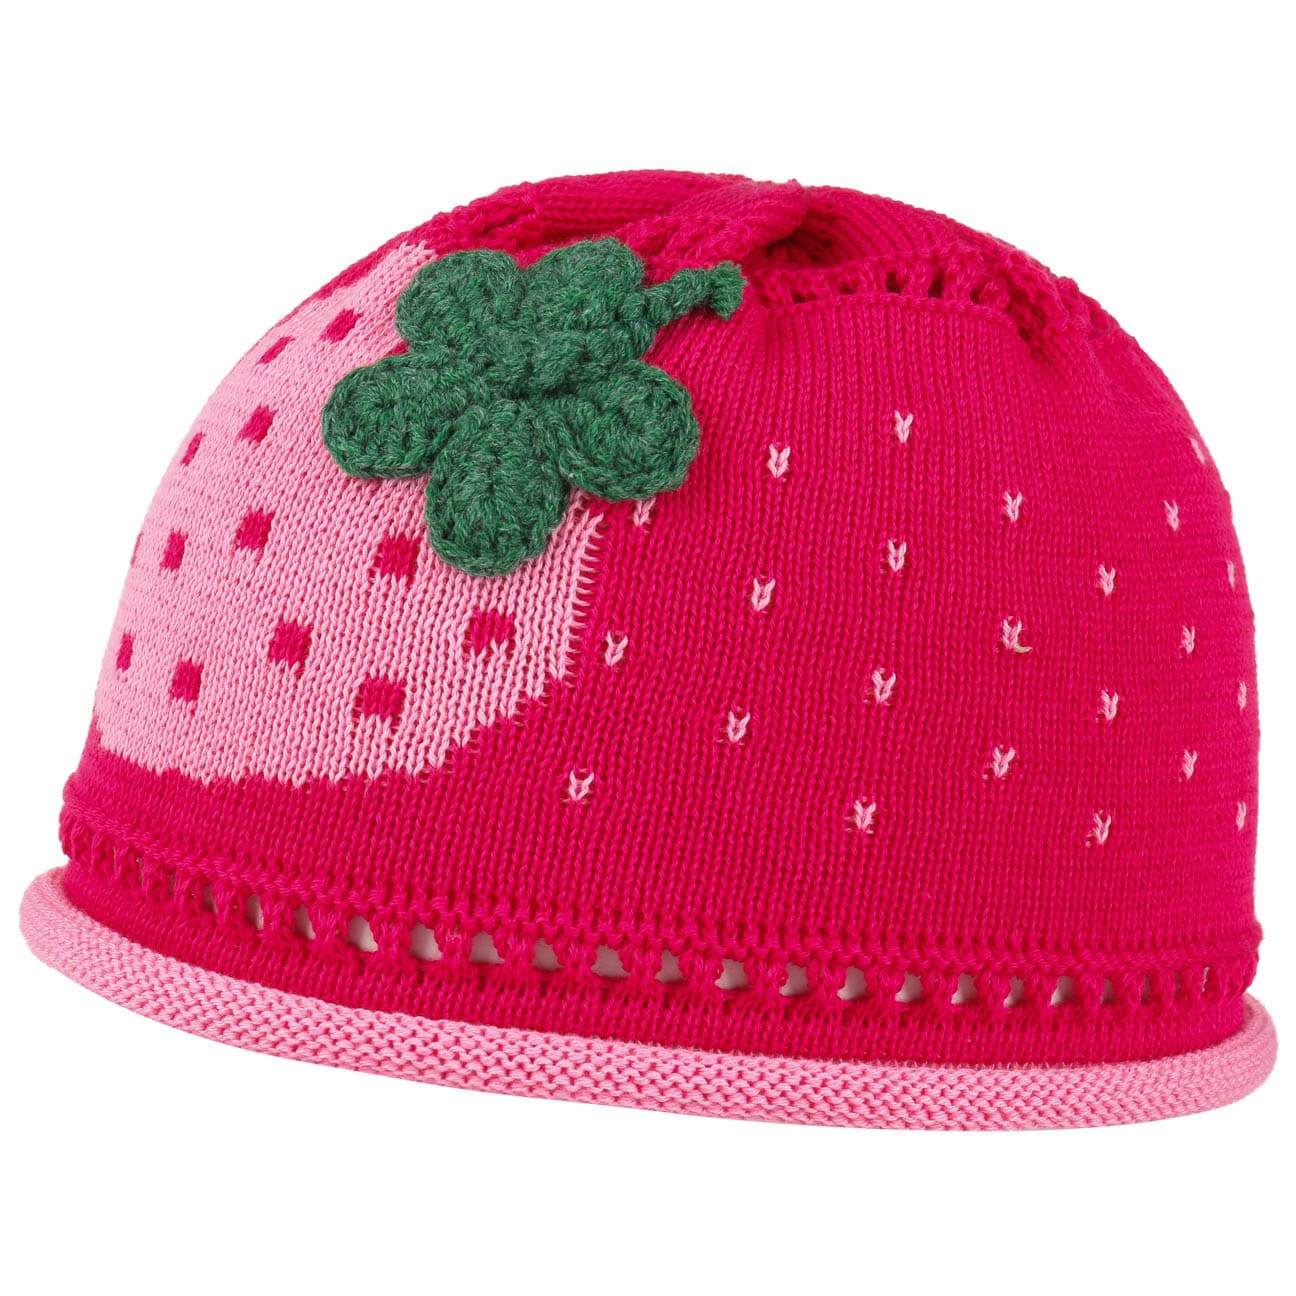 Bonnet pour Enfant Strawberry by maximo  beanie en coton